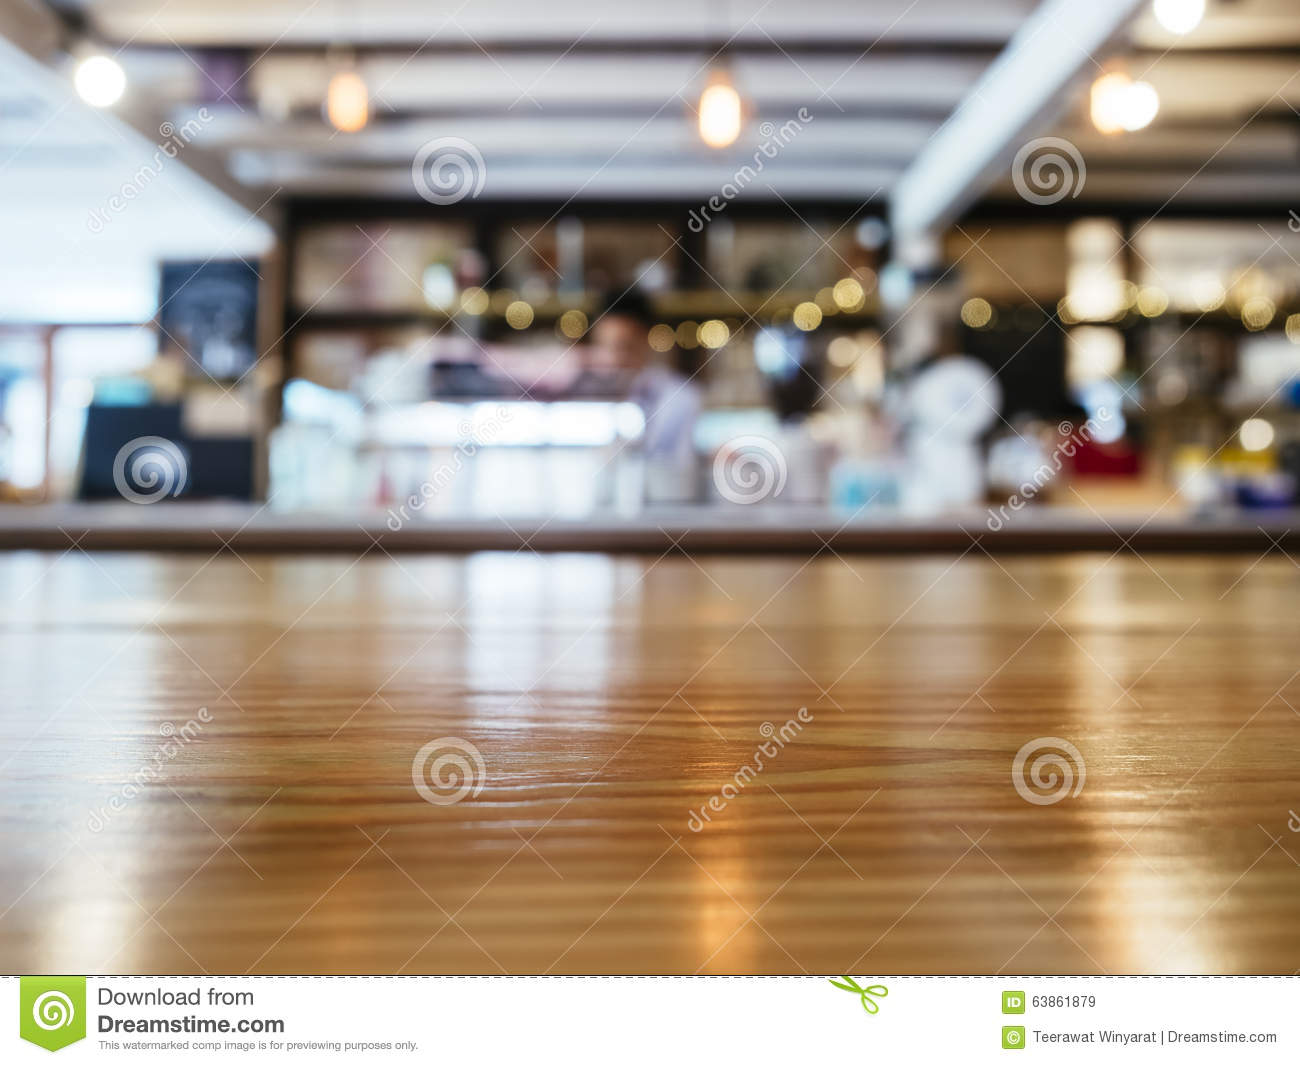 12 616 Cafe Desk Counter Photos Free Royalty Free Stock Photos From Dreamstime